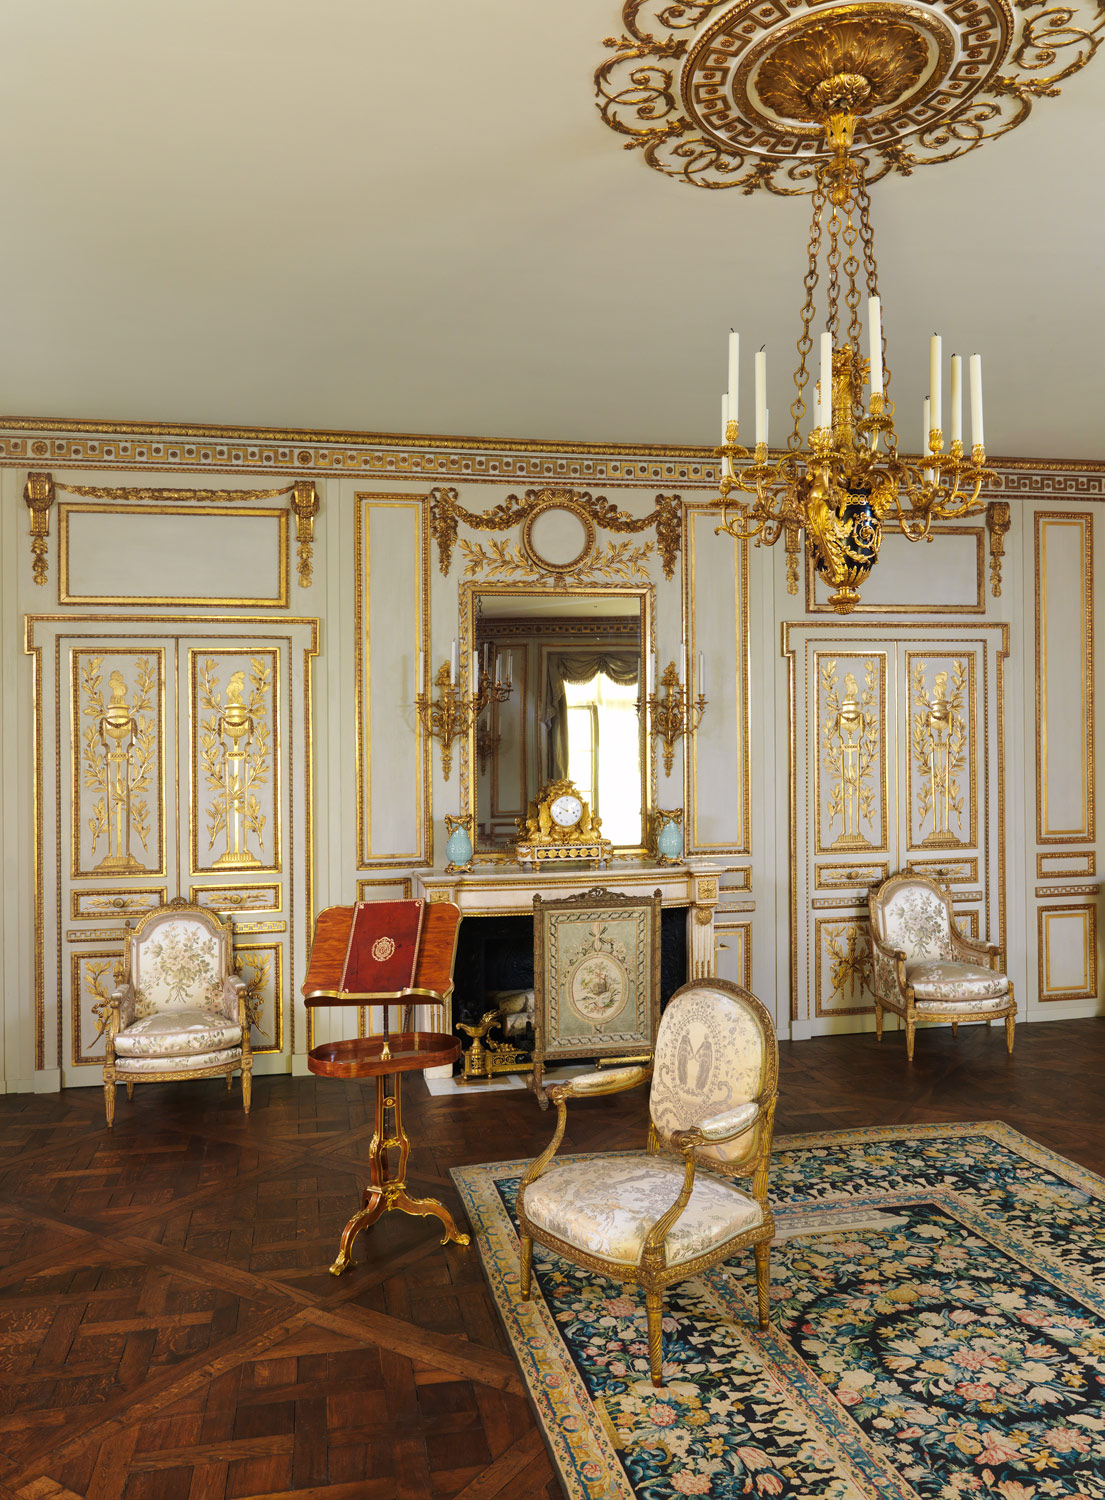 Boiserie from the Hotel de Cabris